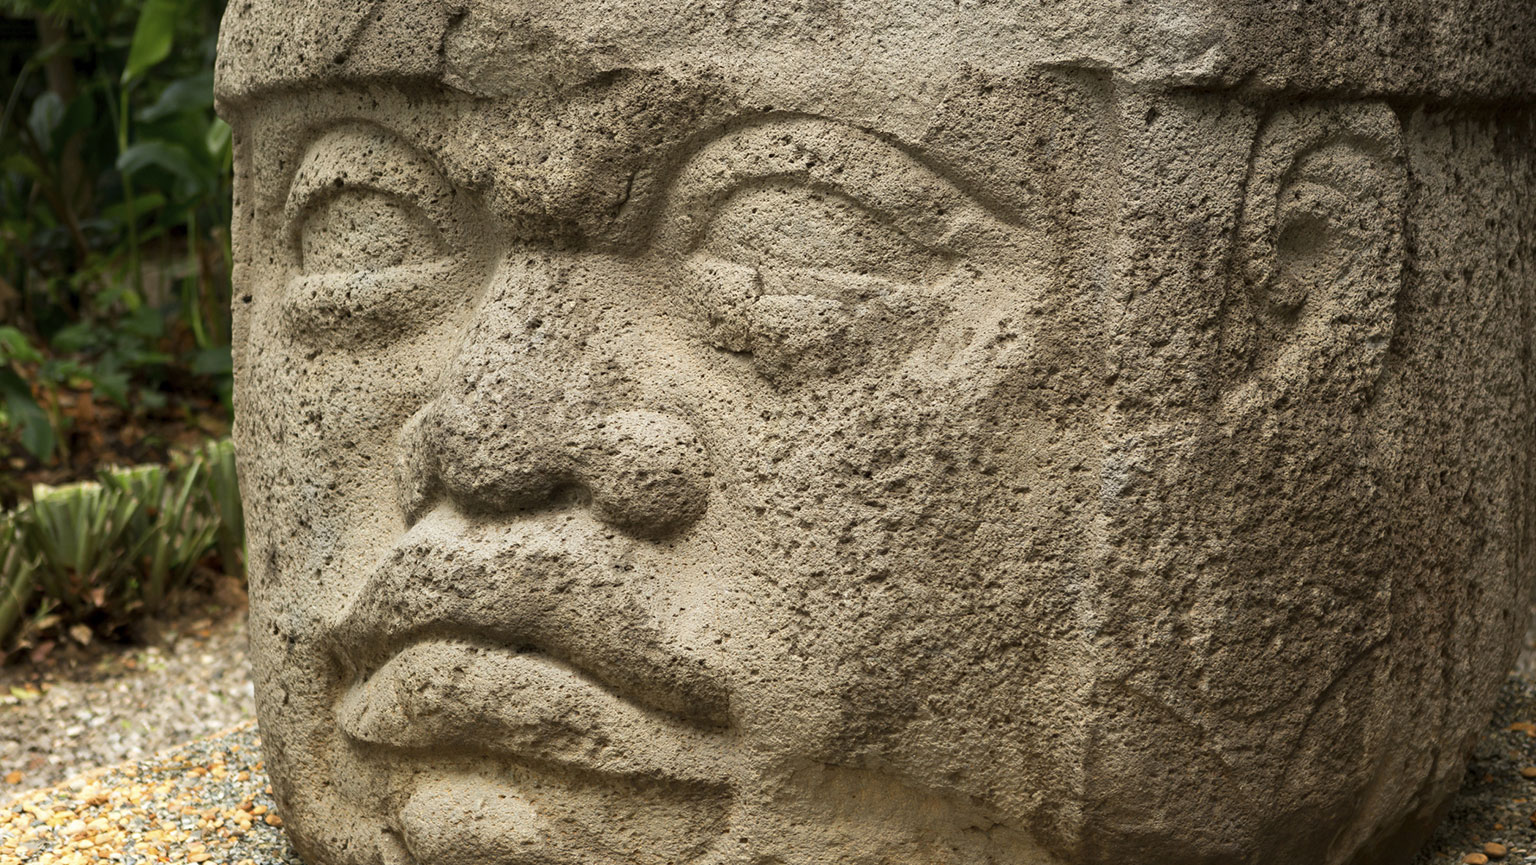 Olmec Civilization Emerges